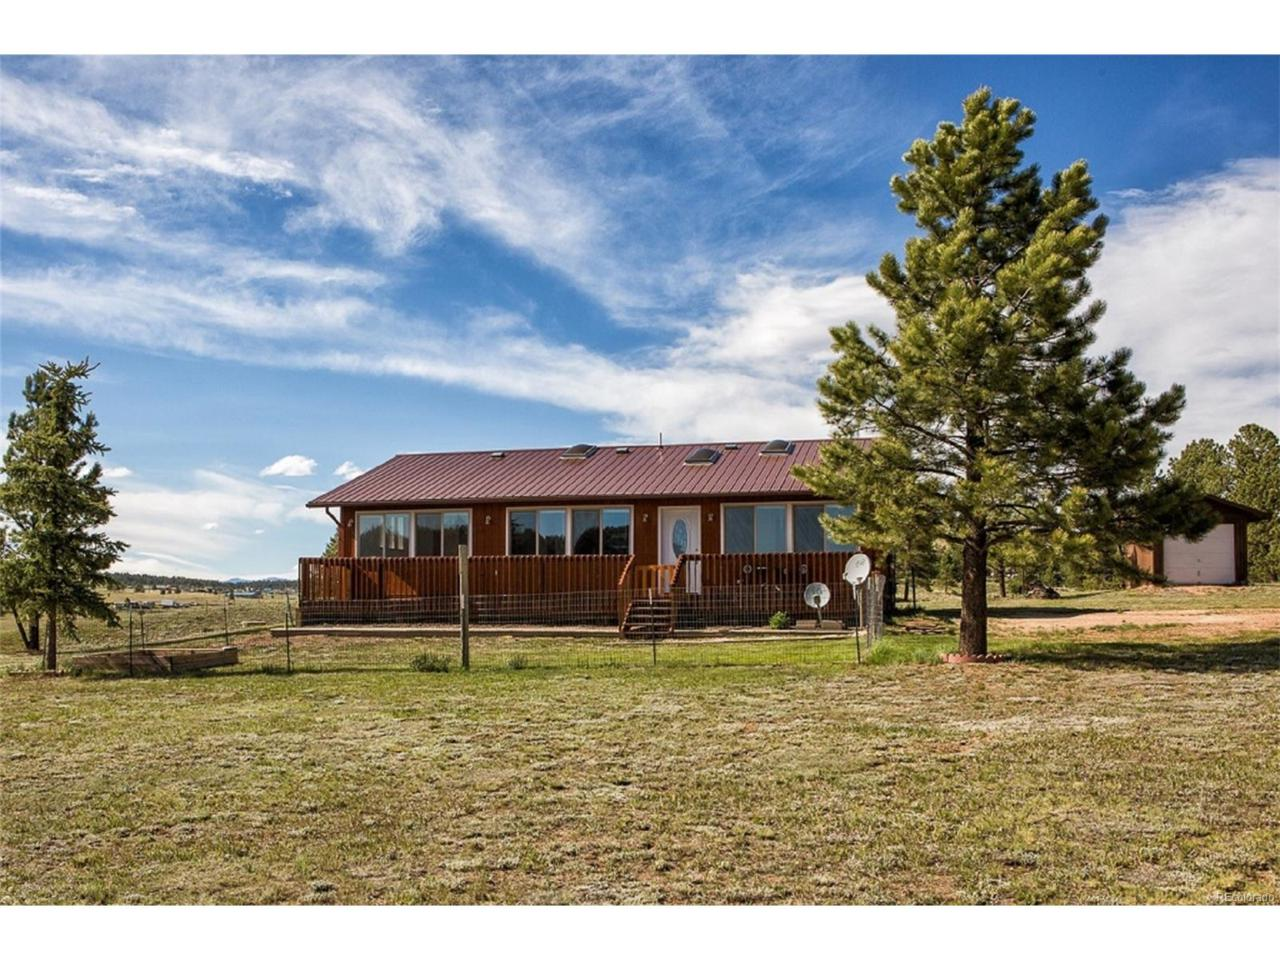 379 High Pasture Road, Florissant, CO 80816 (MLS #8415513) :: 8z Real Estate